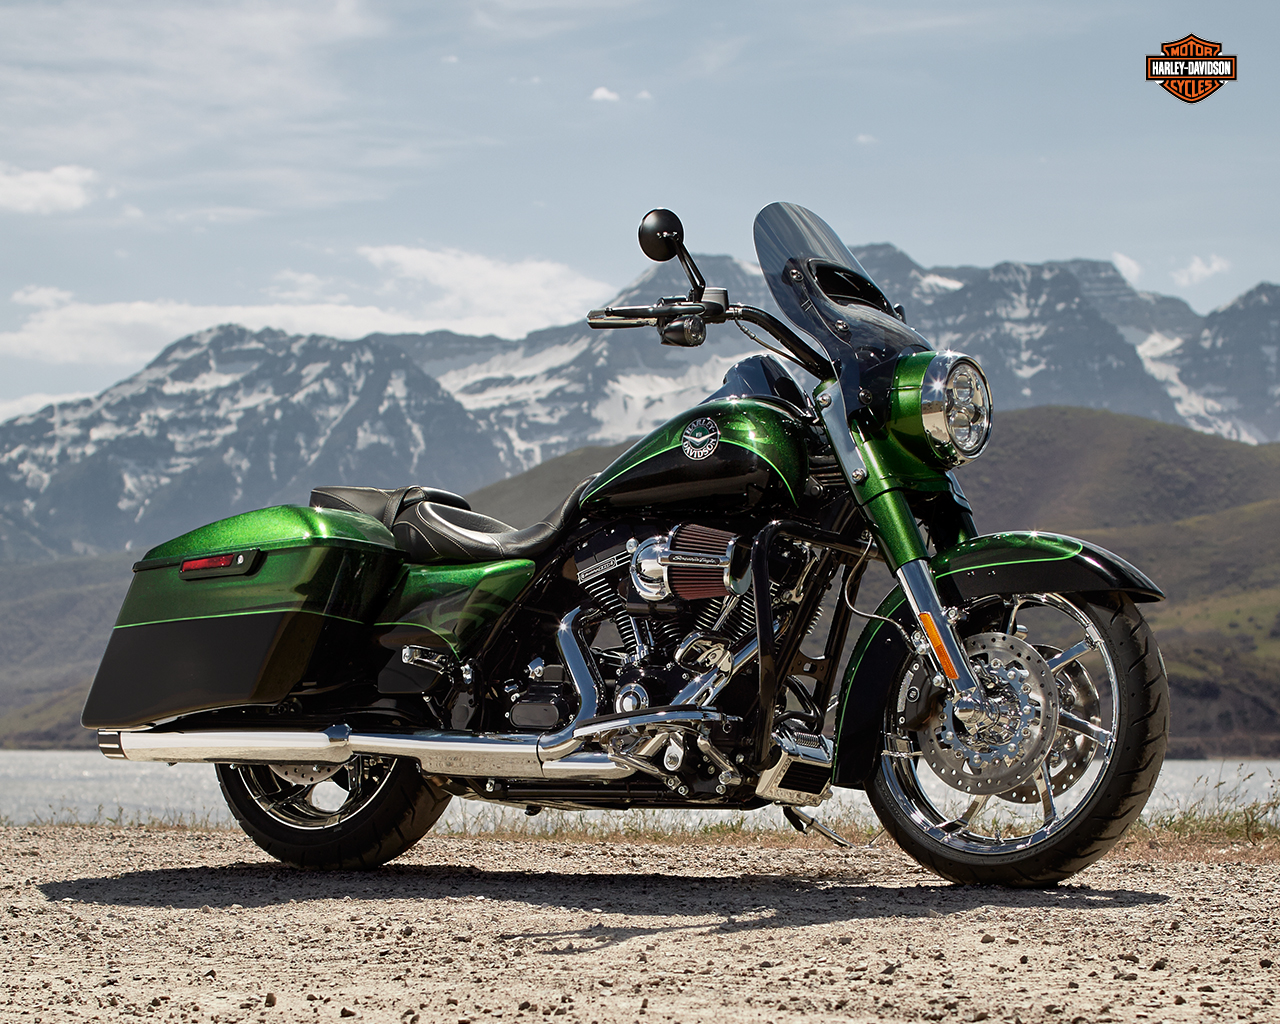 harley-davidson wallpaper (harley-davidson CVO Road King)